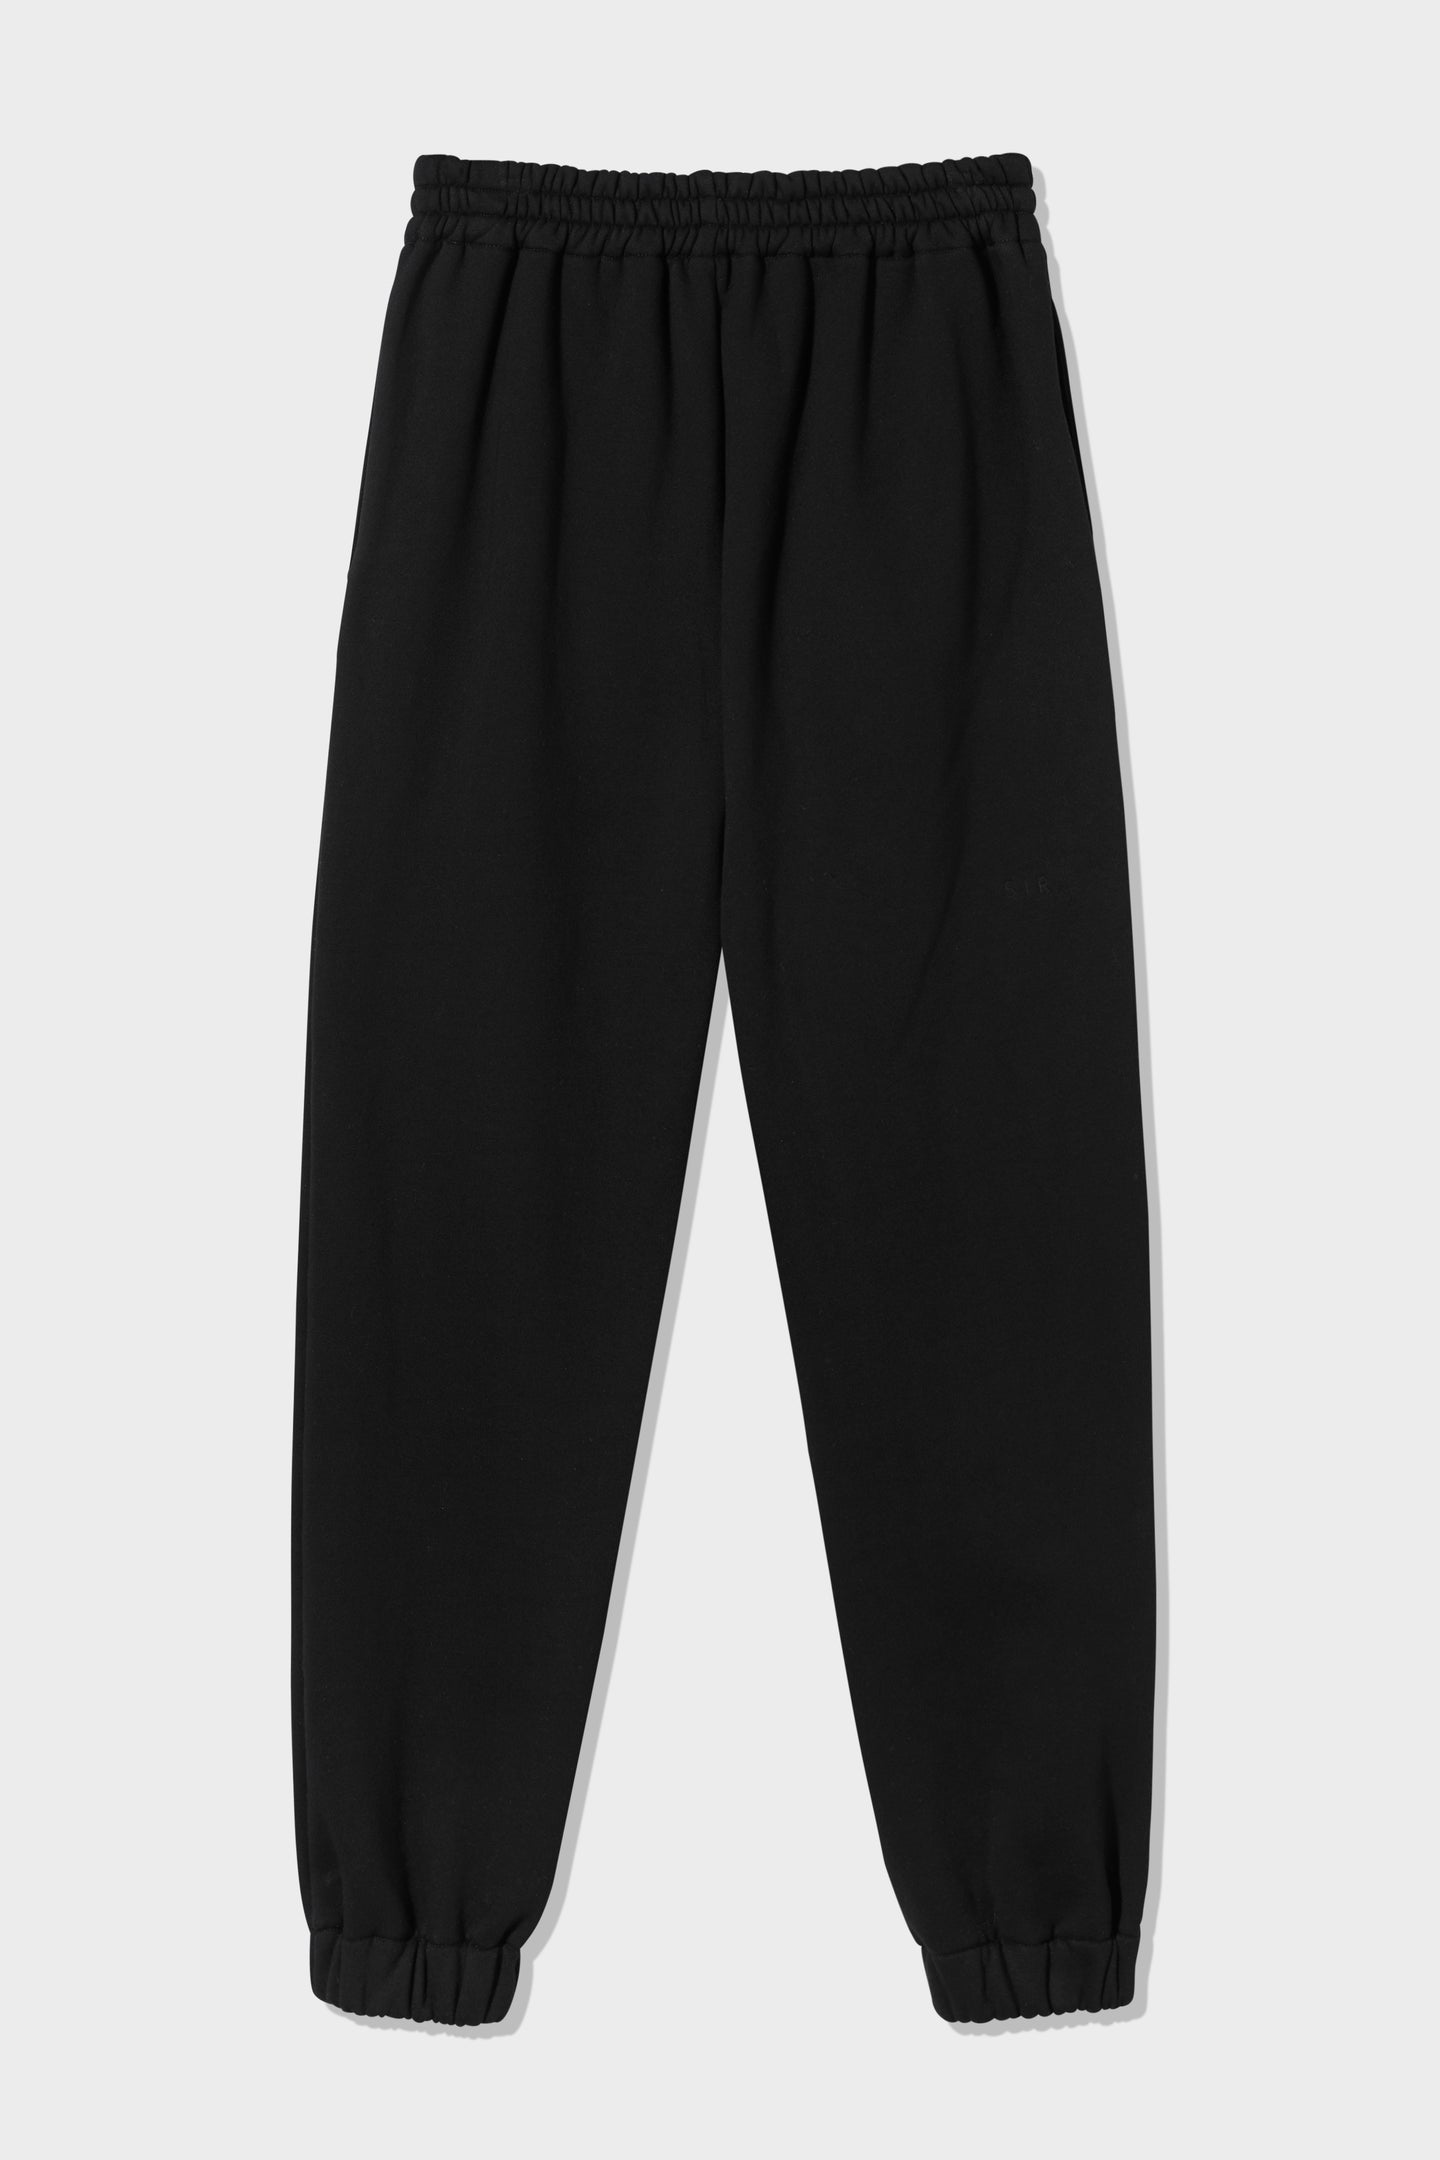 SIR the label WOMENS TRACK PANT BLACK